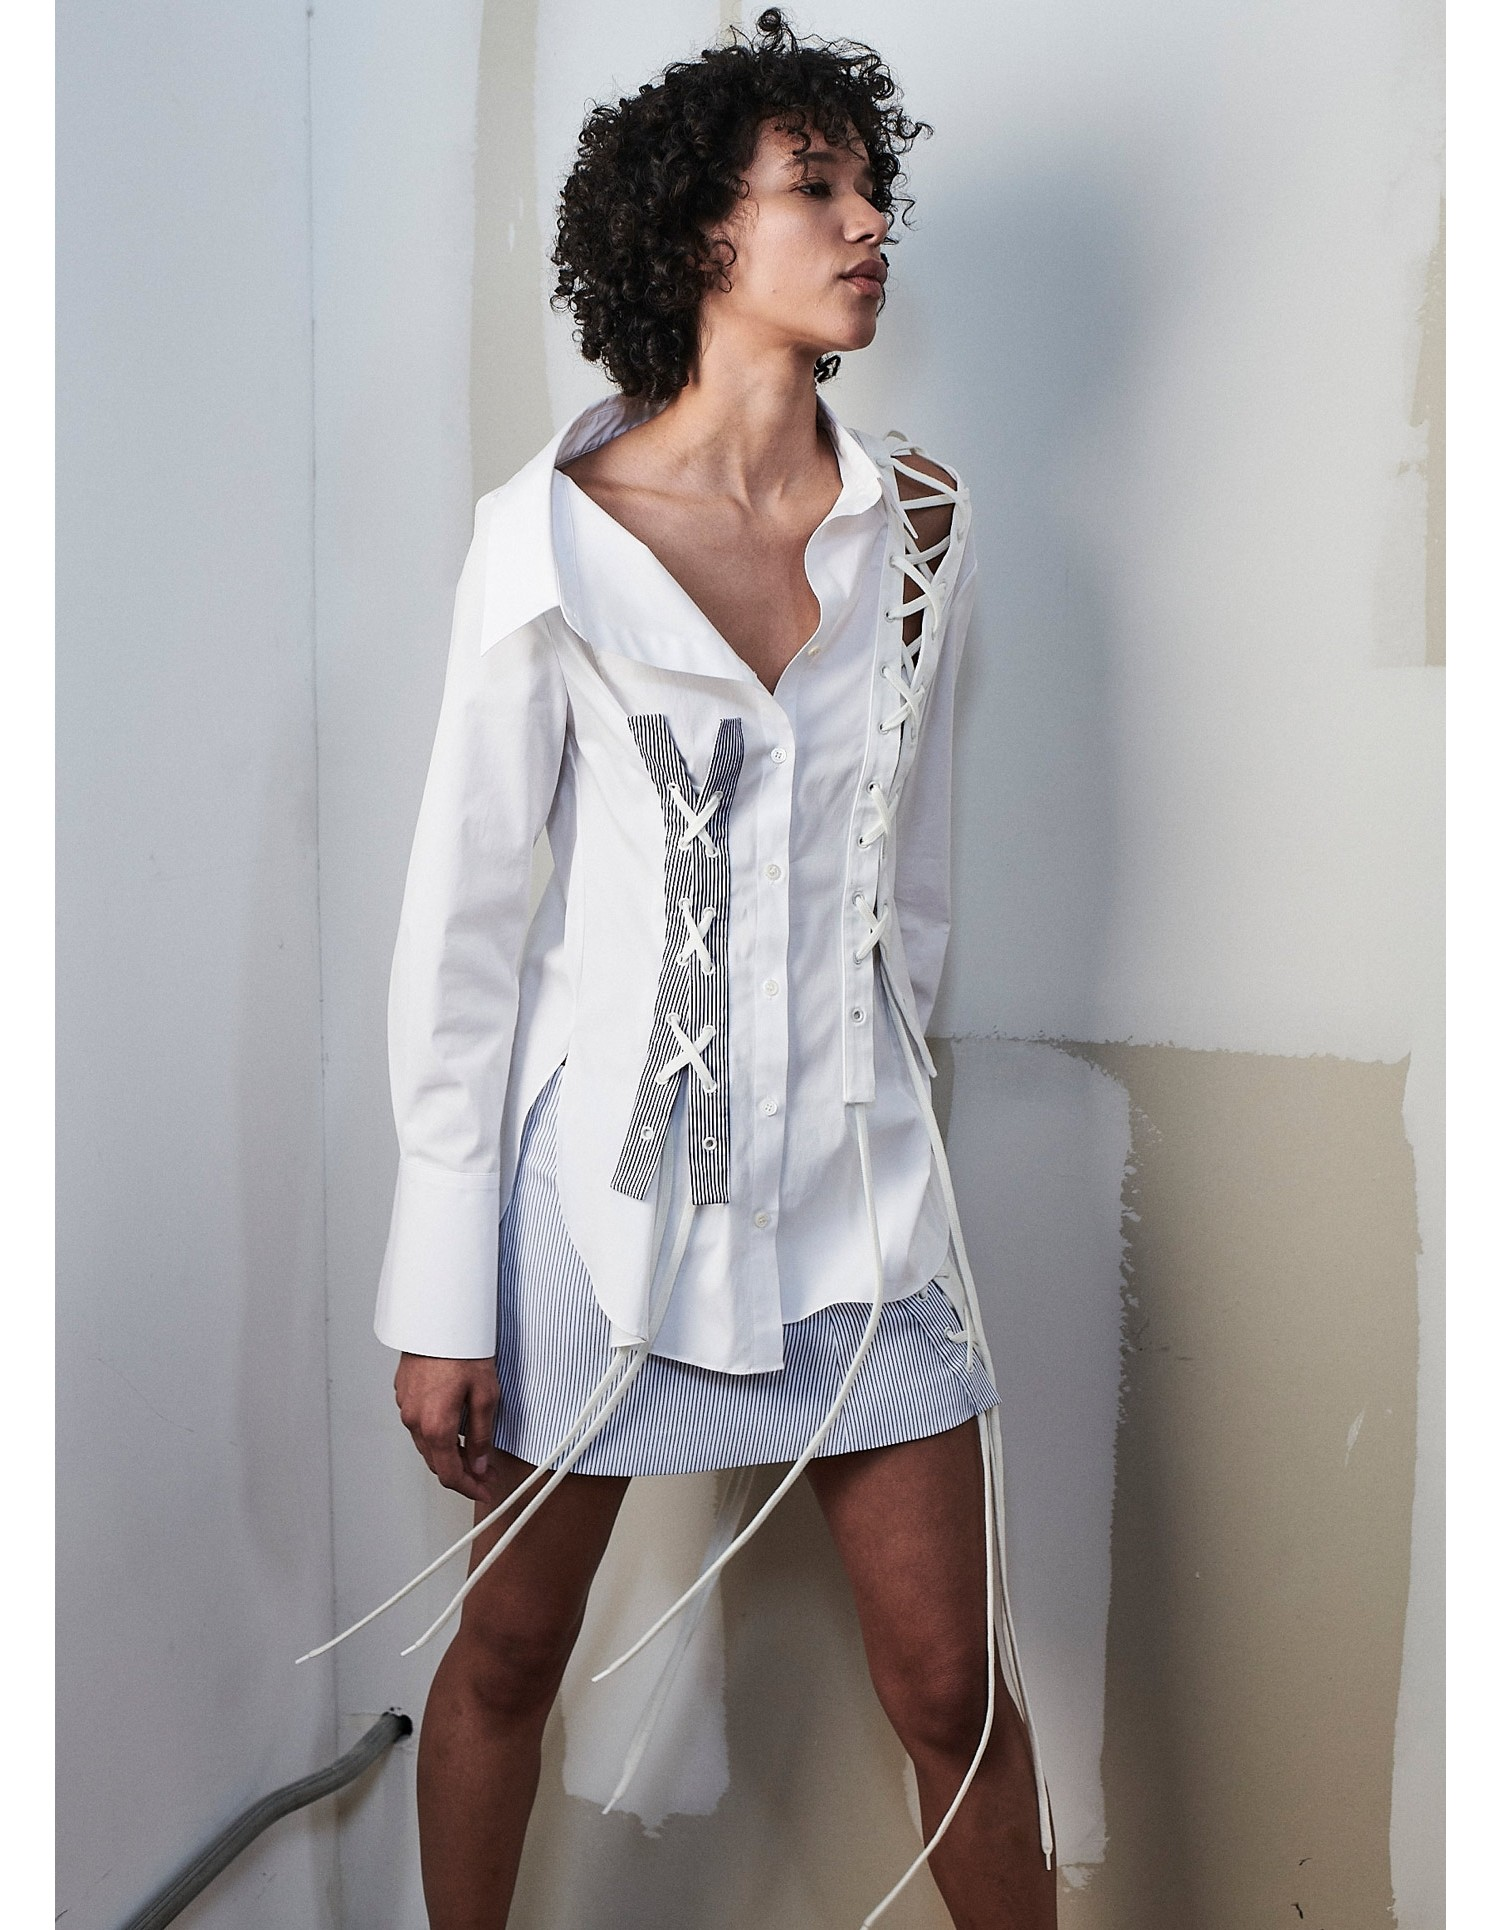 MONSE Crooked Lace Up Shirt on Model Side View